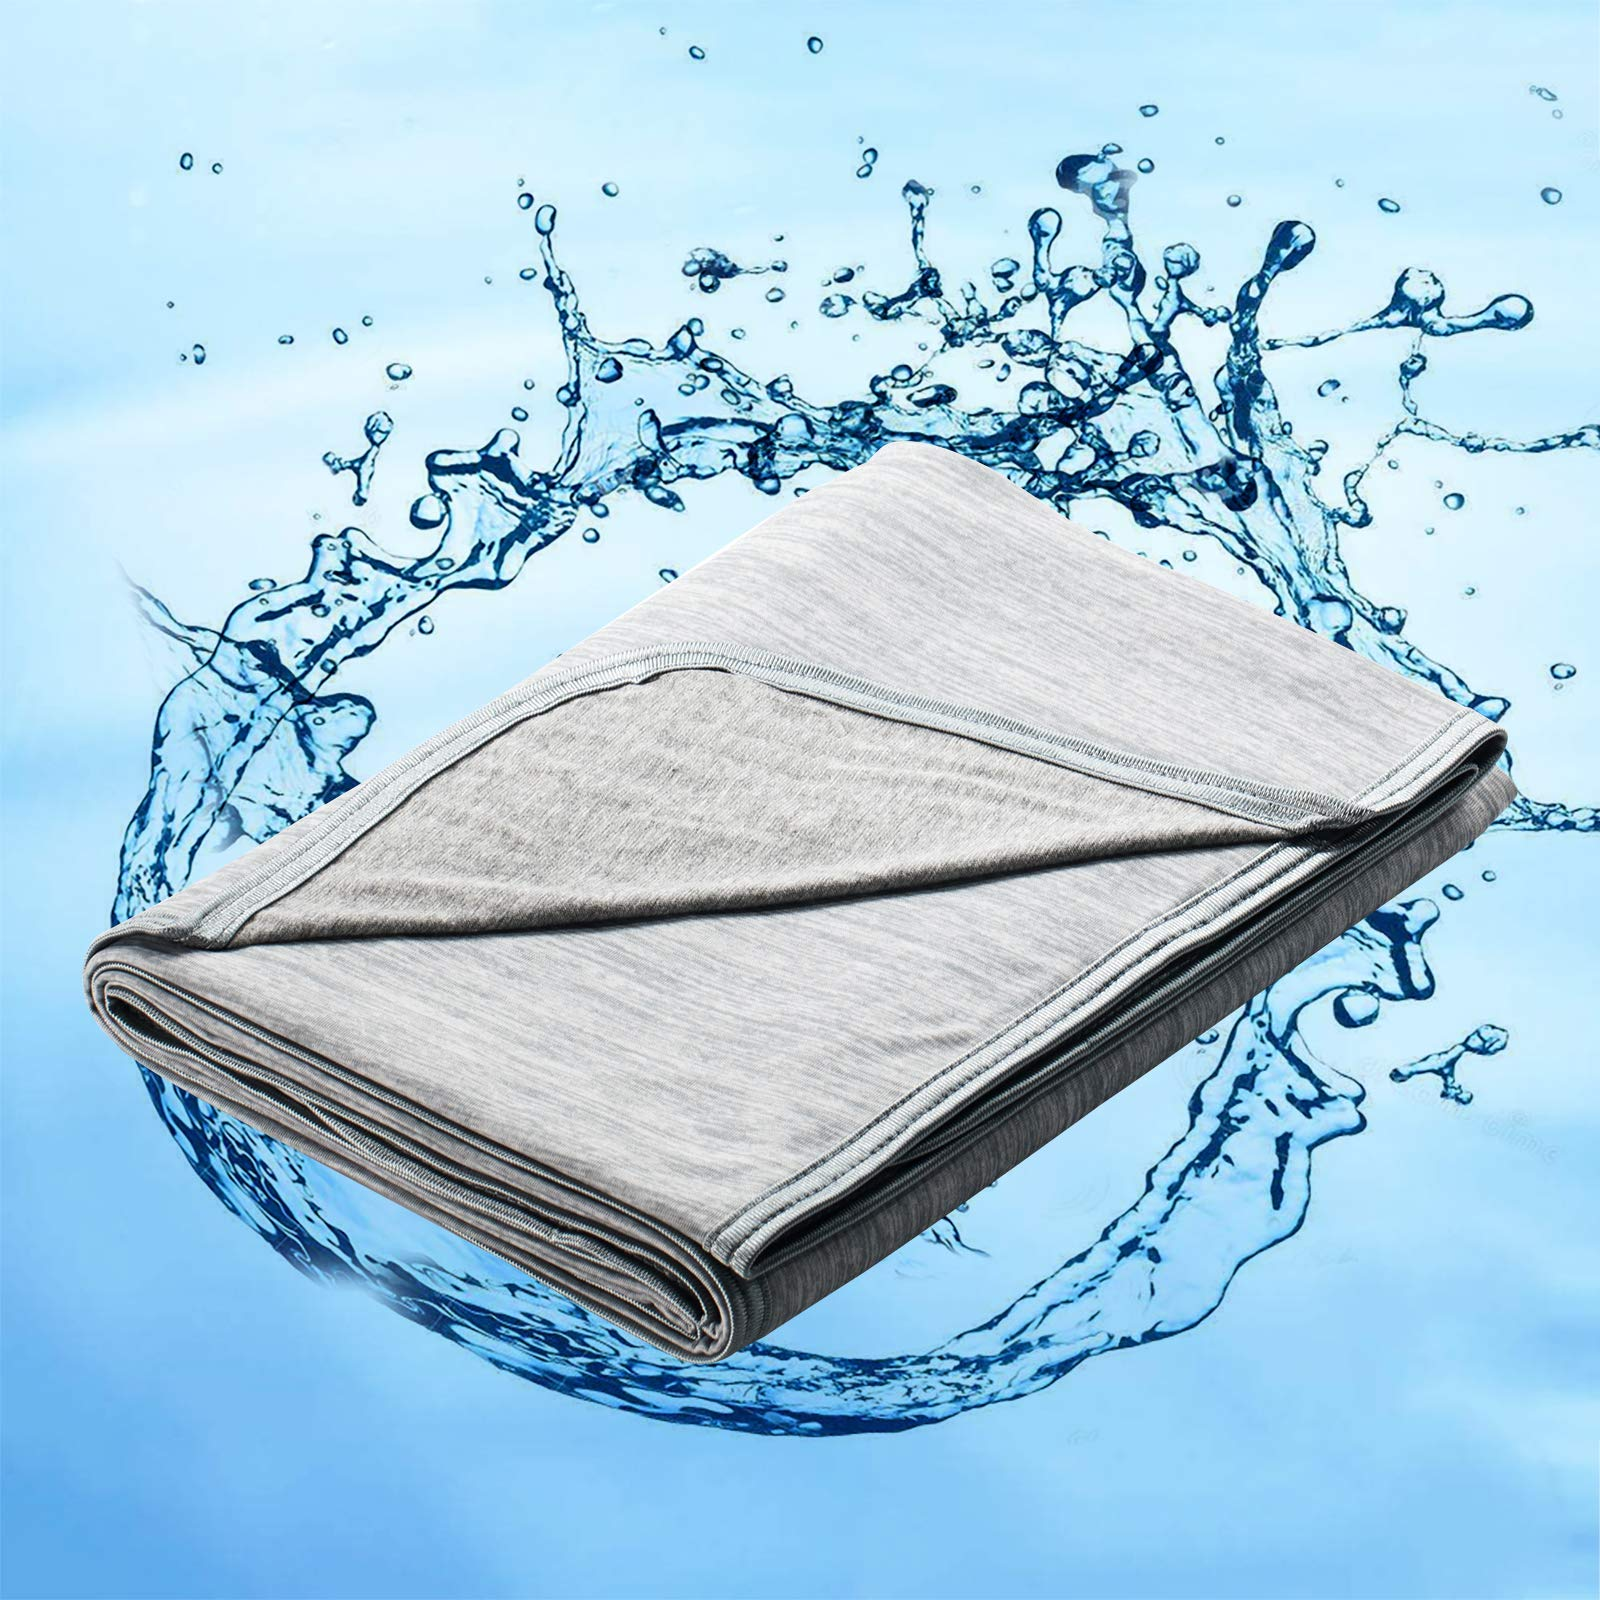 "Marchpower Summer Cooling Blanket, Latest Japanese Arc-Chill Q-MAX>0.43 Cooling Fiber - Lightweight Cold Blankets Absorb Heat for Hot Sleeper Night Sweats Sofa Bed Cozy Blanket (Gray Twin 79""x59"")"